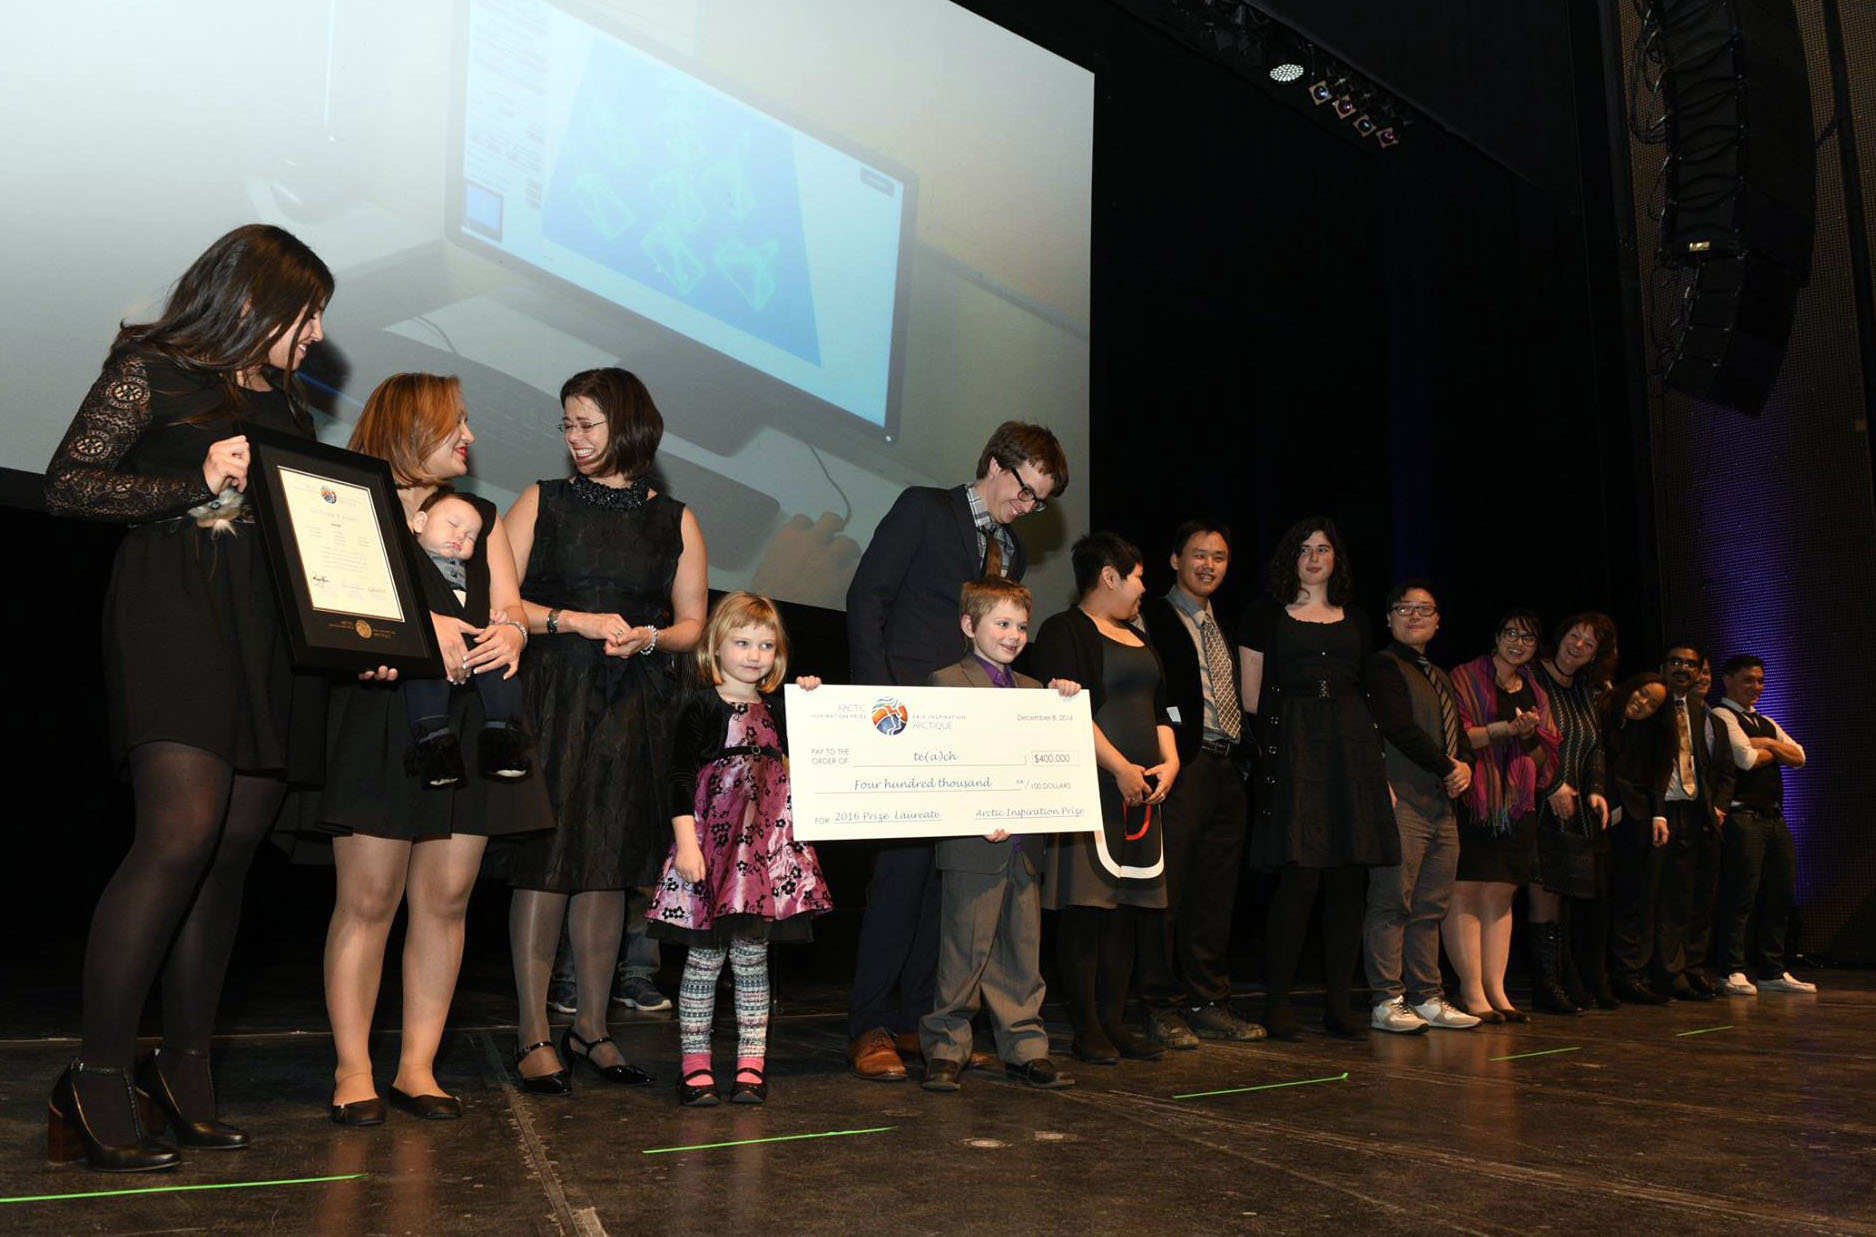 Members of te(a)ch, including Pinnguaq's Ryan Oliver, were named as an Arctic Inspiration Prize laureate Dec. 8 and awarded $400,000 to deliver their computer science-based curriculum. (PHOTO COURTESY OF AIP)